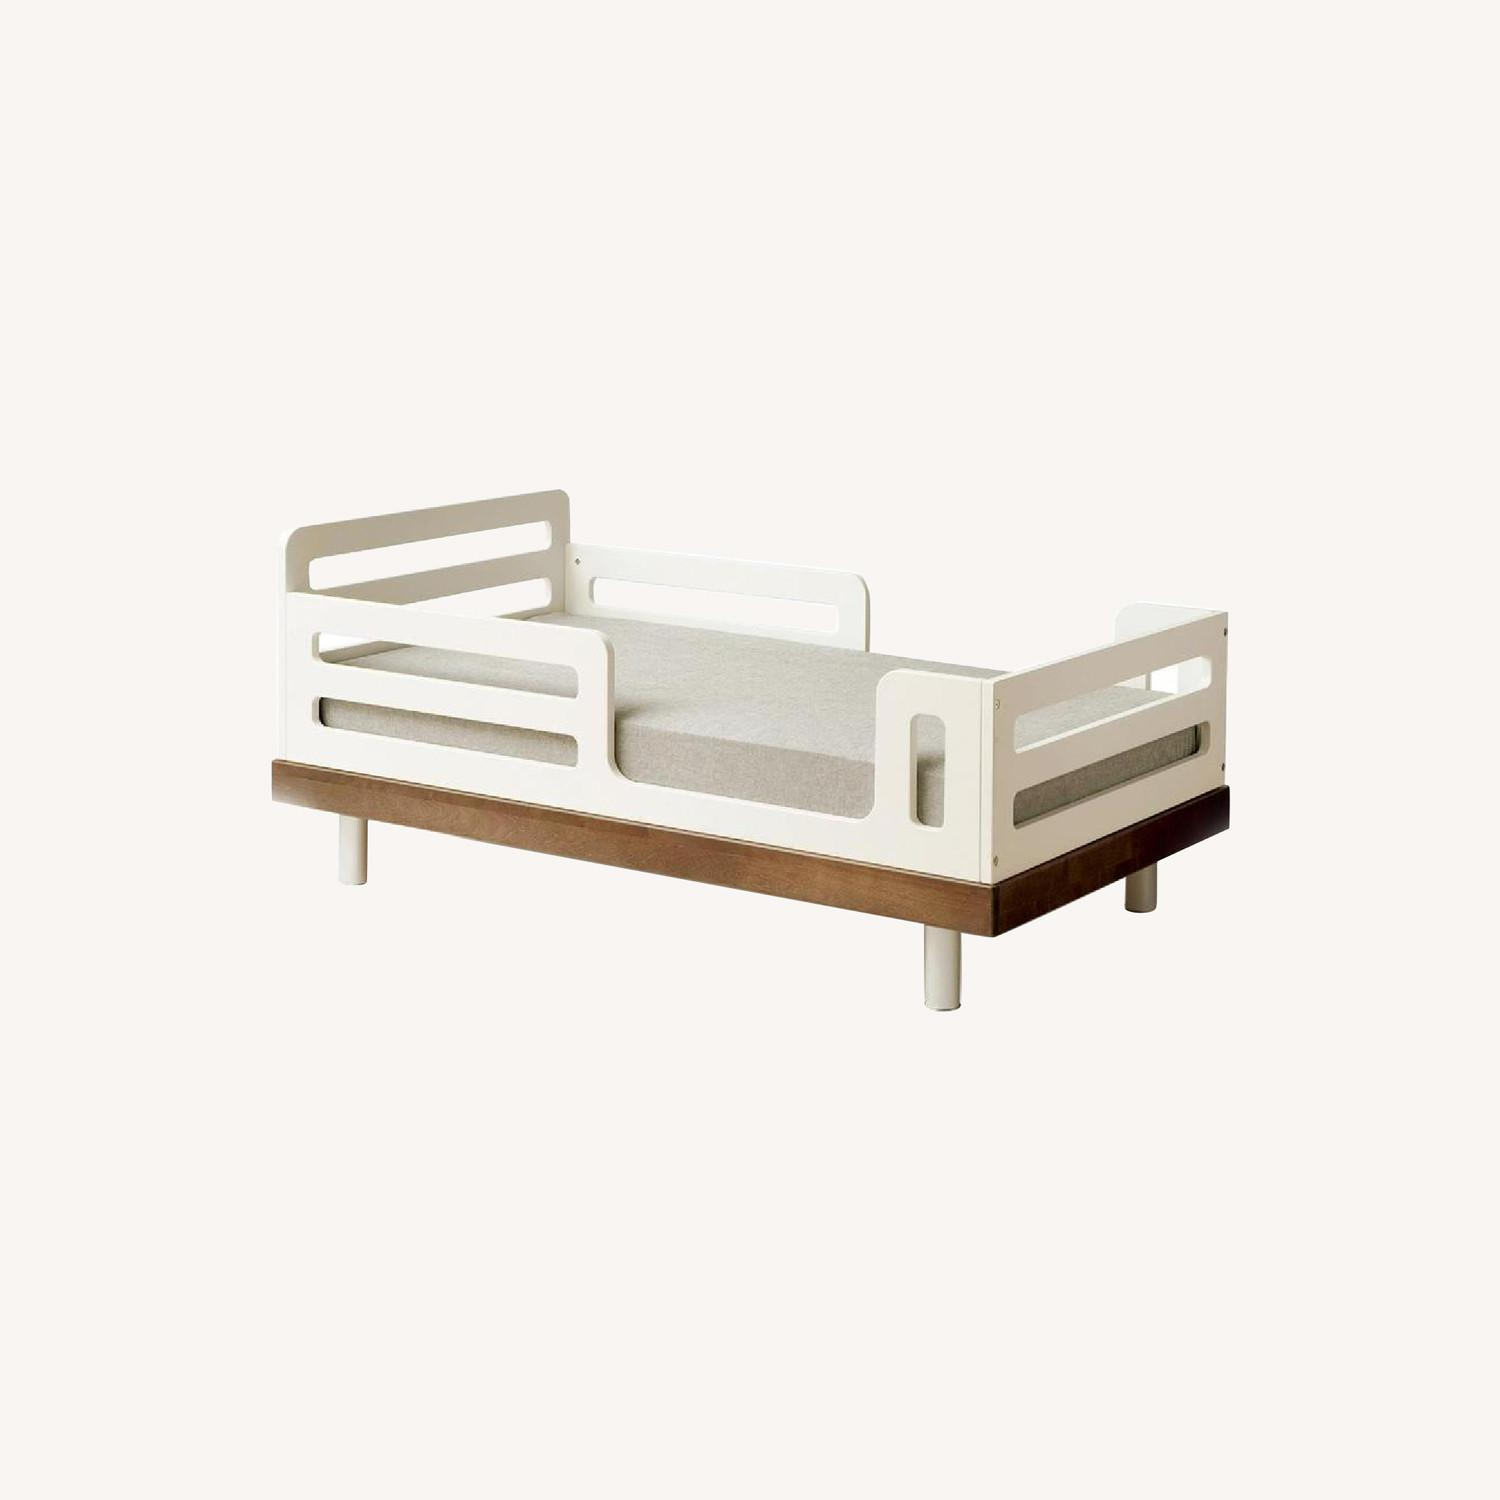 Oeuf Classic Toddler Bed - image-0